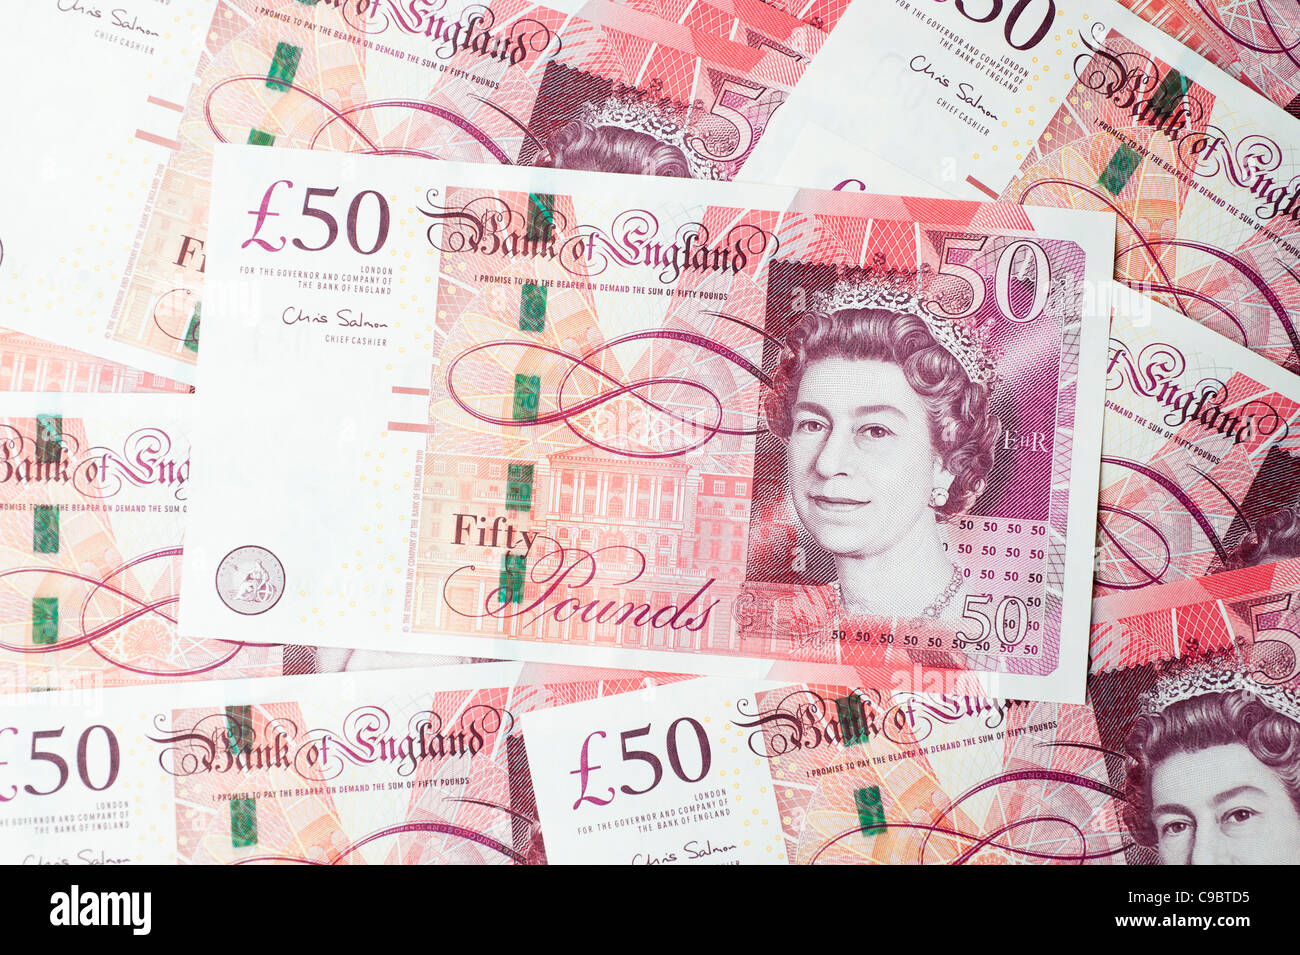 New UK £50 notes, the highest denomination note in circulation, issued by the Bank of England on 2 November 2011 Stock Photo